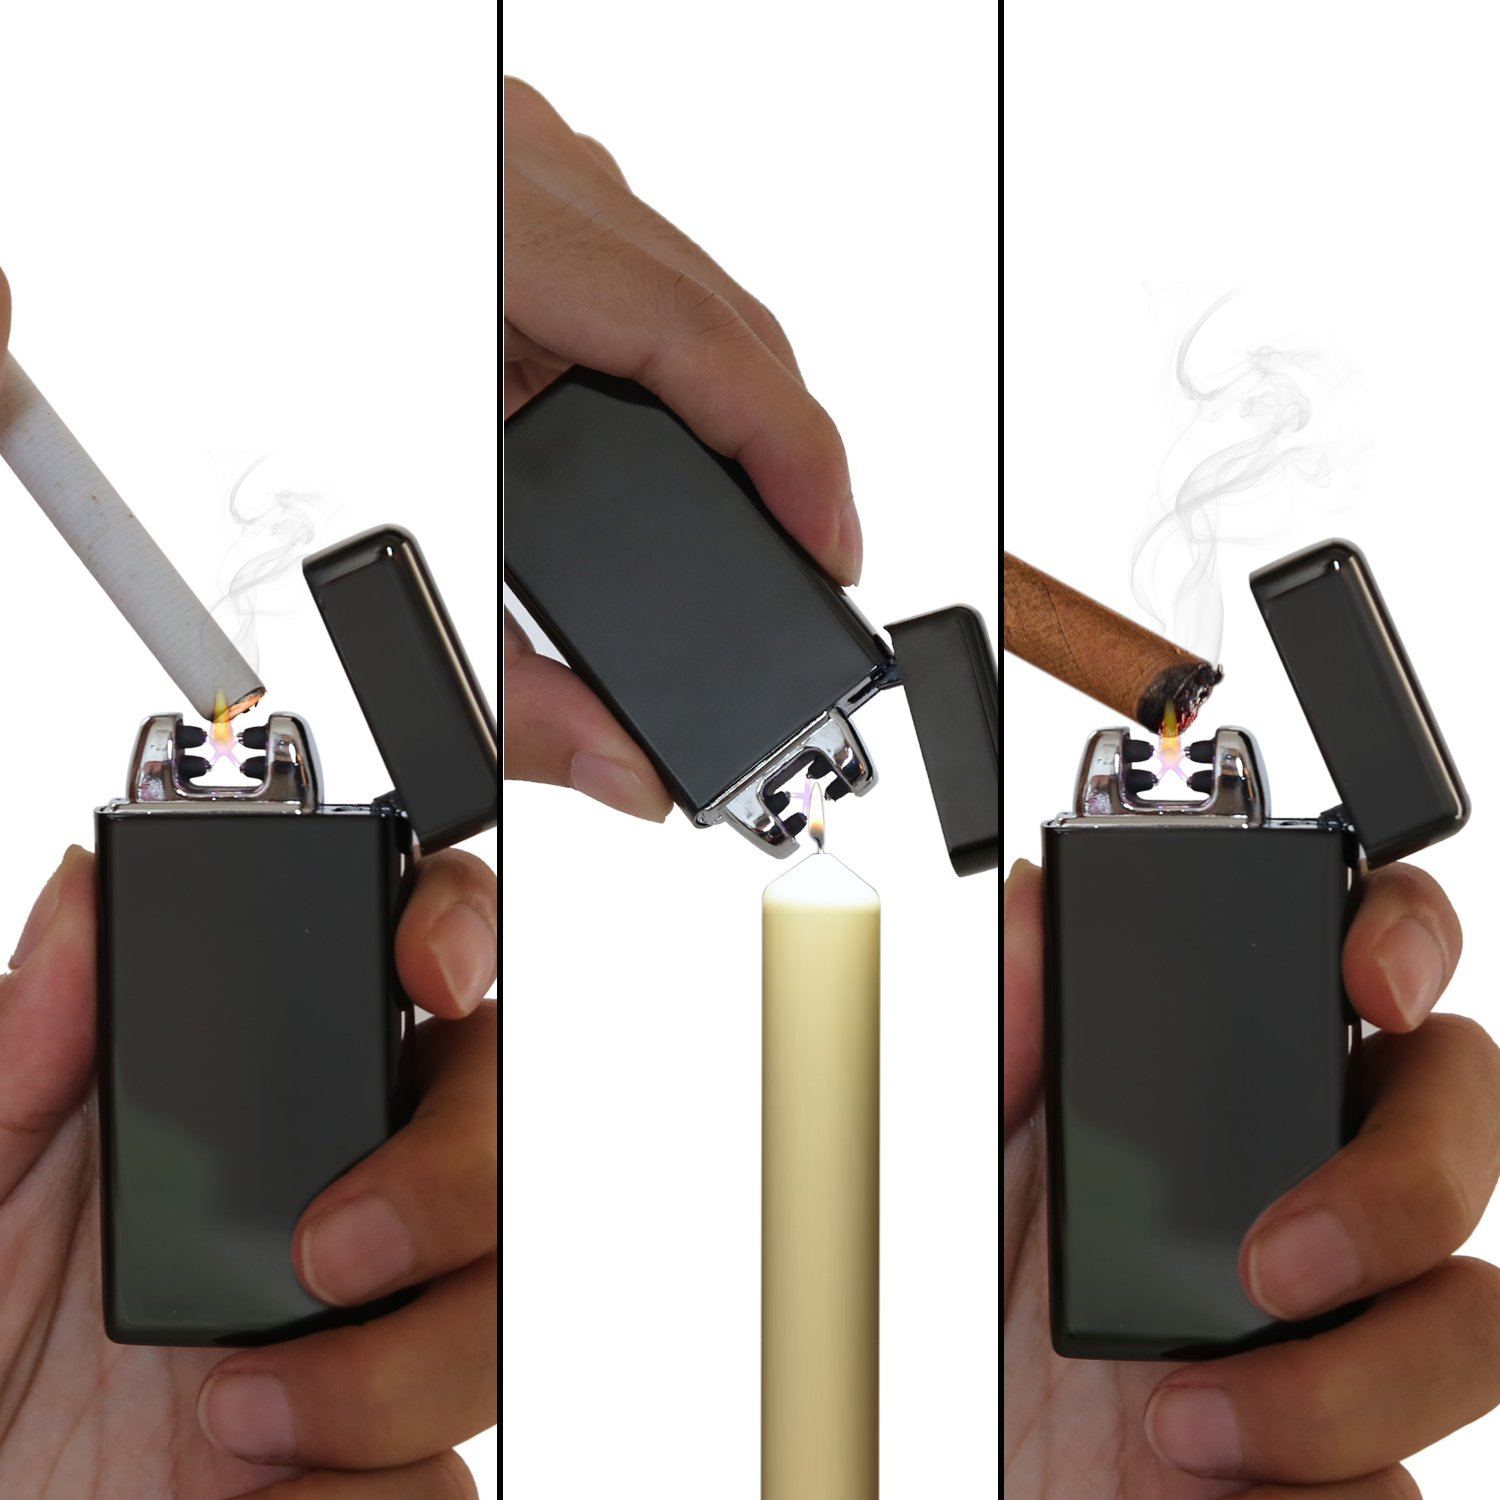 Ruiwo Tesla Coil Lighters Metal Rechargeable Windproof Flameless Electric Dual Arc USB Lighter (Black) by Ruiwo (Image #5)